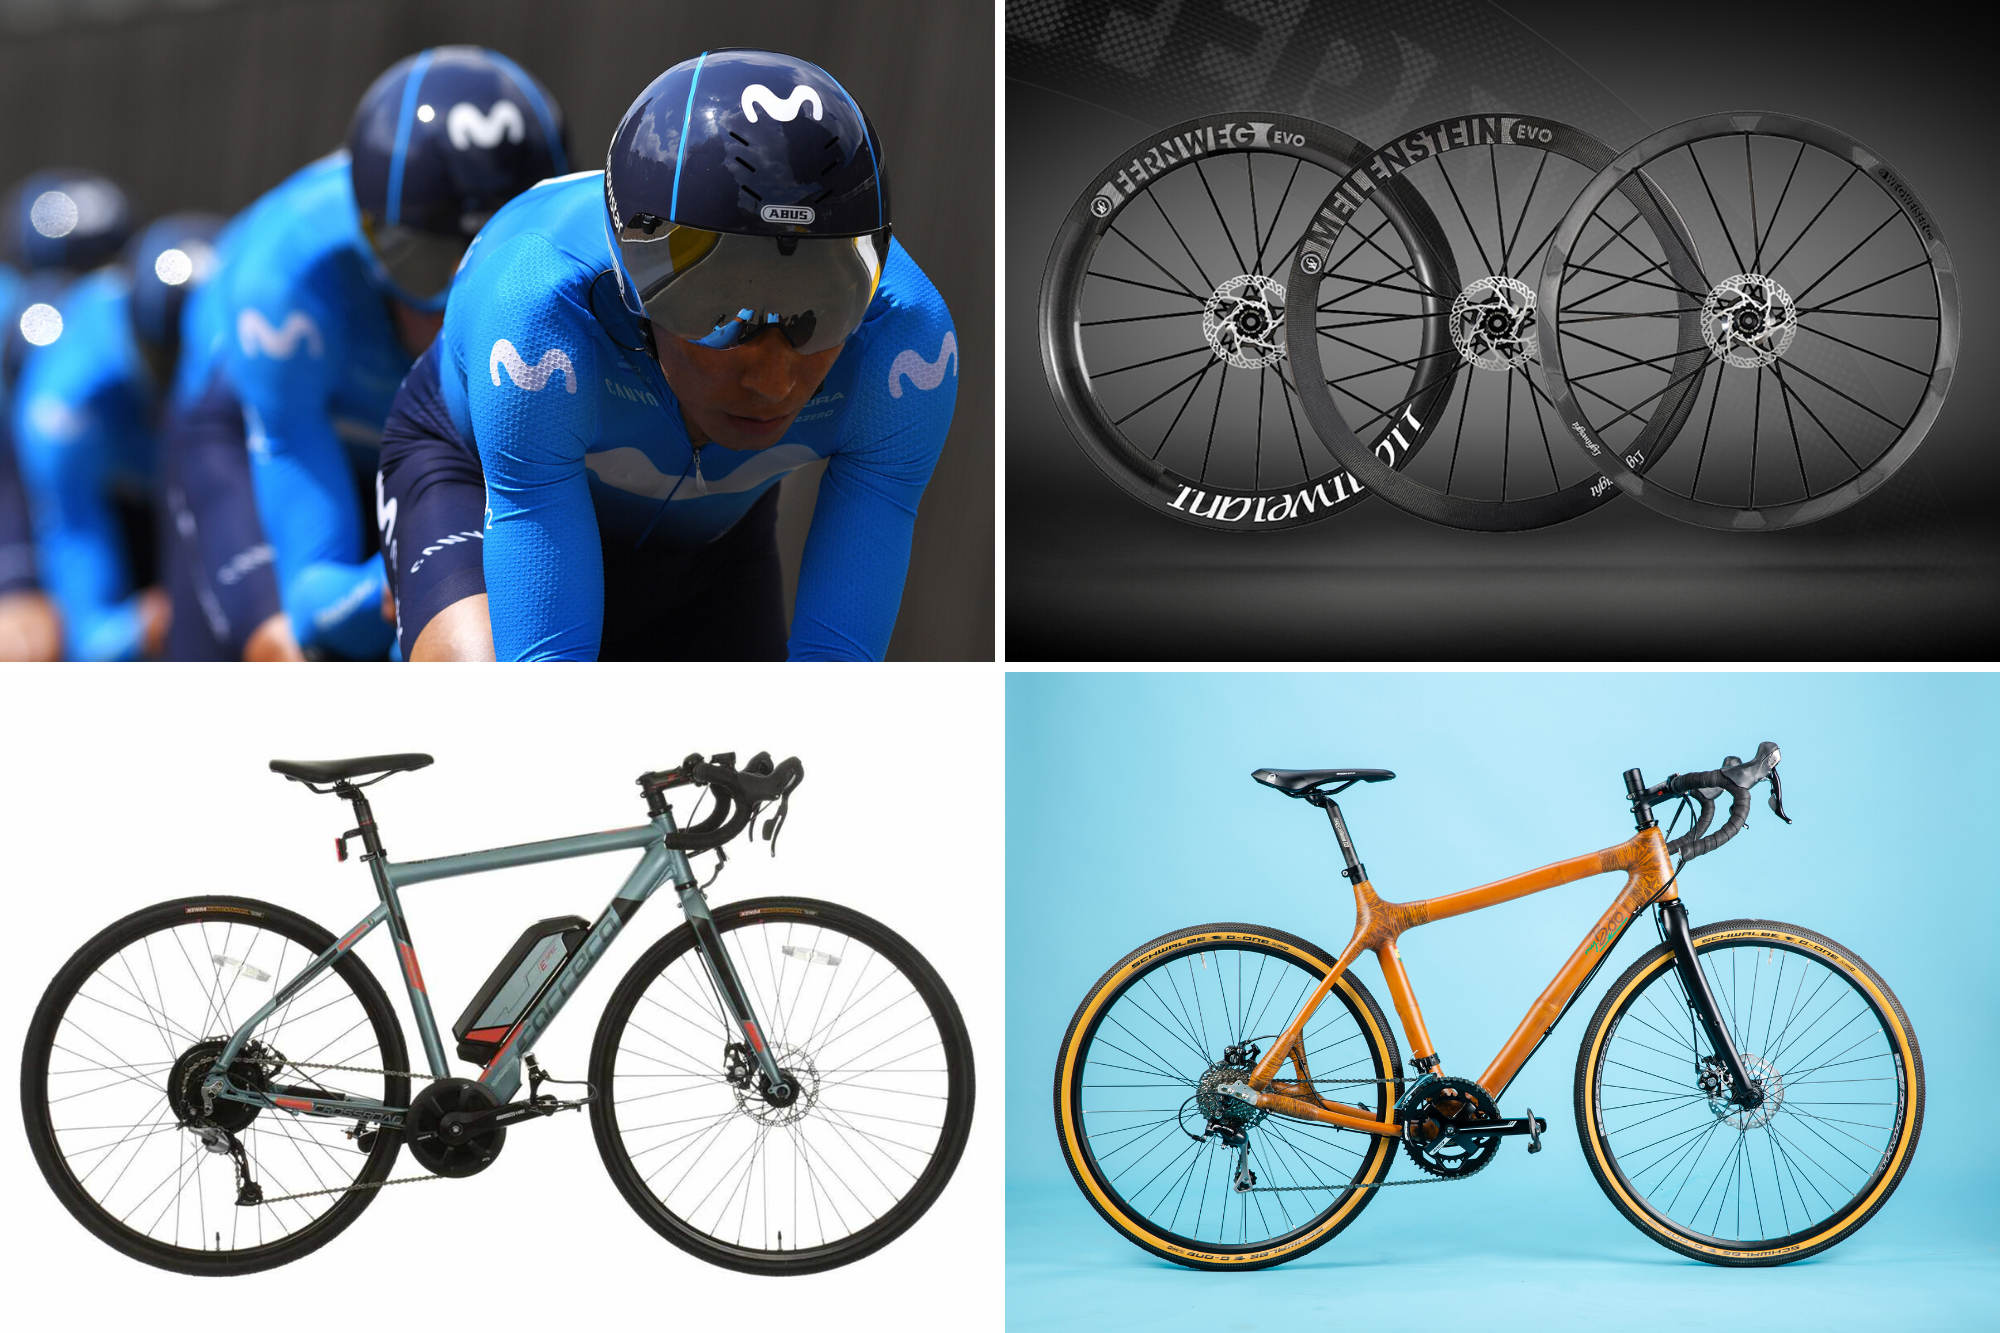 Tech of the week: Endura's split from Movistar, new Lightweight wheels and Bamboo bikes